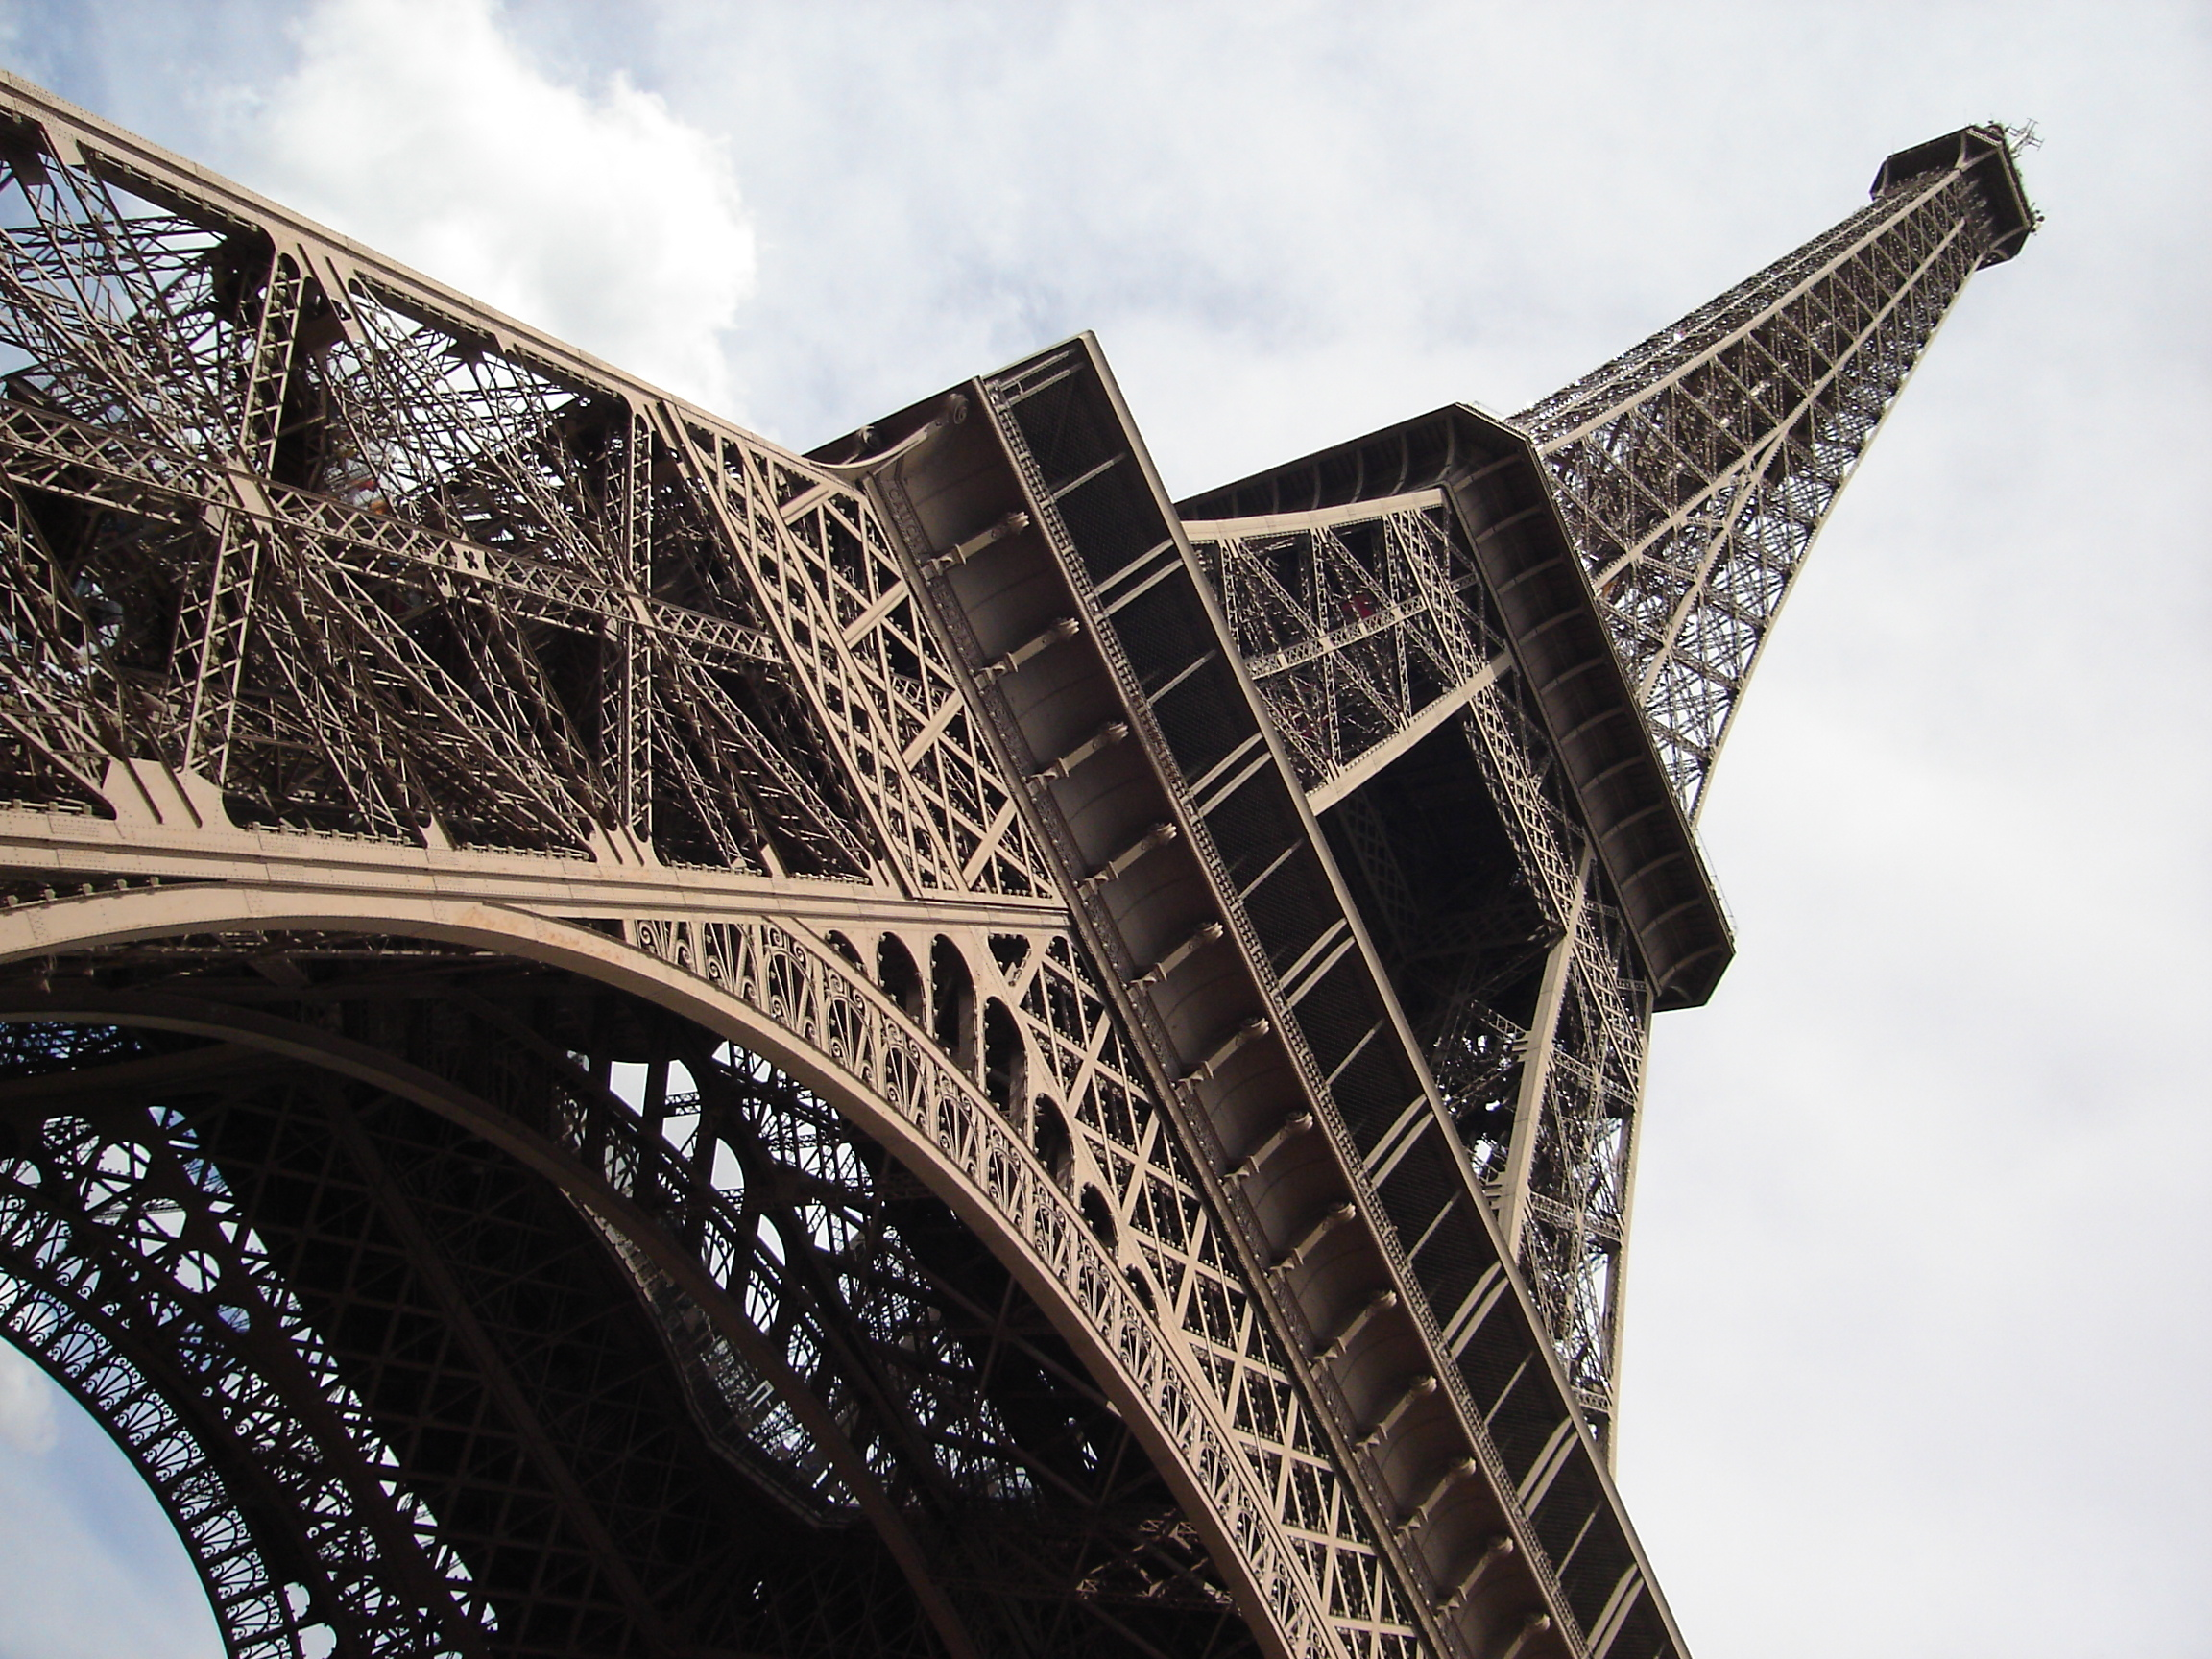 Egaming chiefs agree to disagree over France